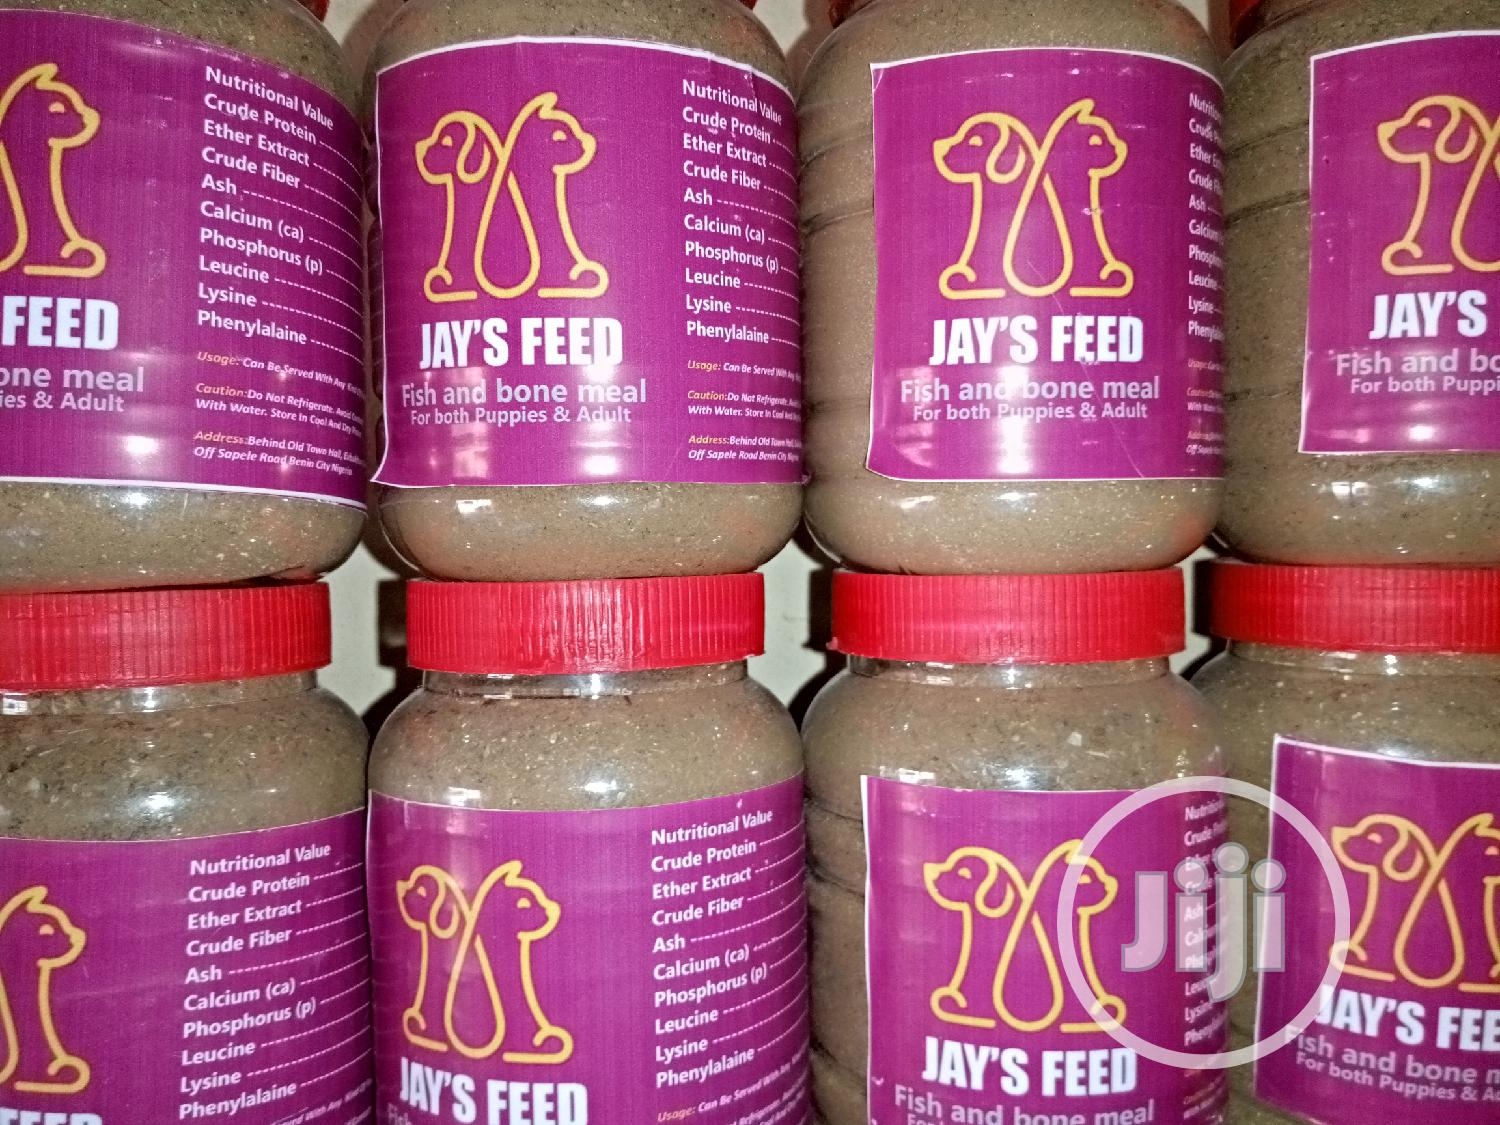 Jays Bone And Fish Meal Supplements